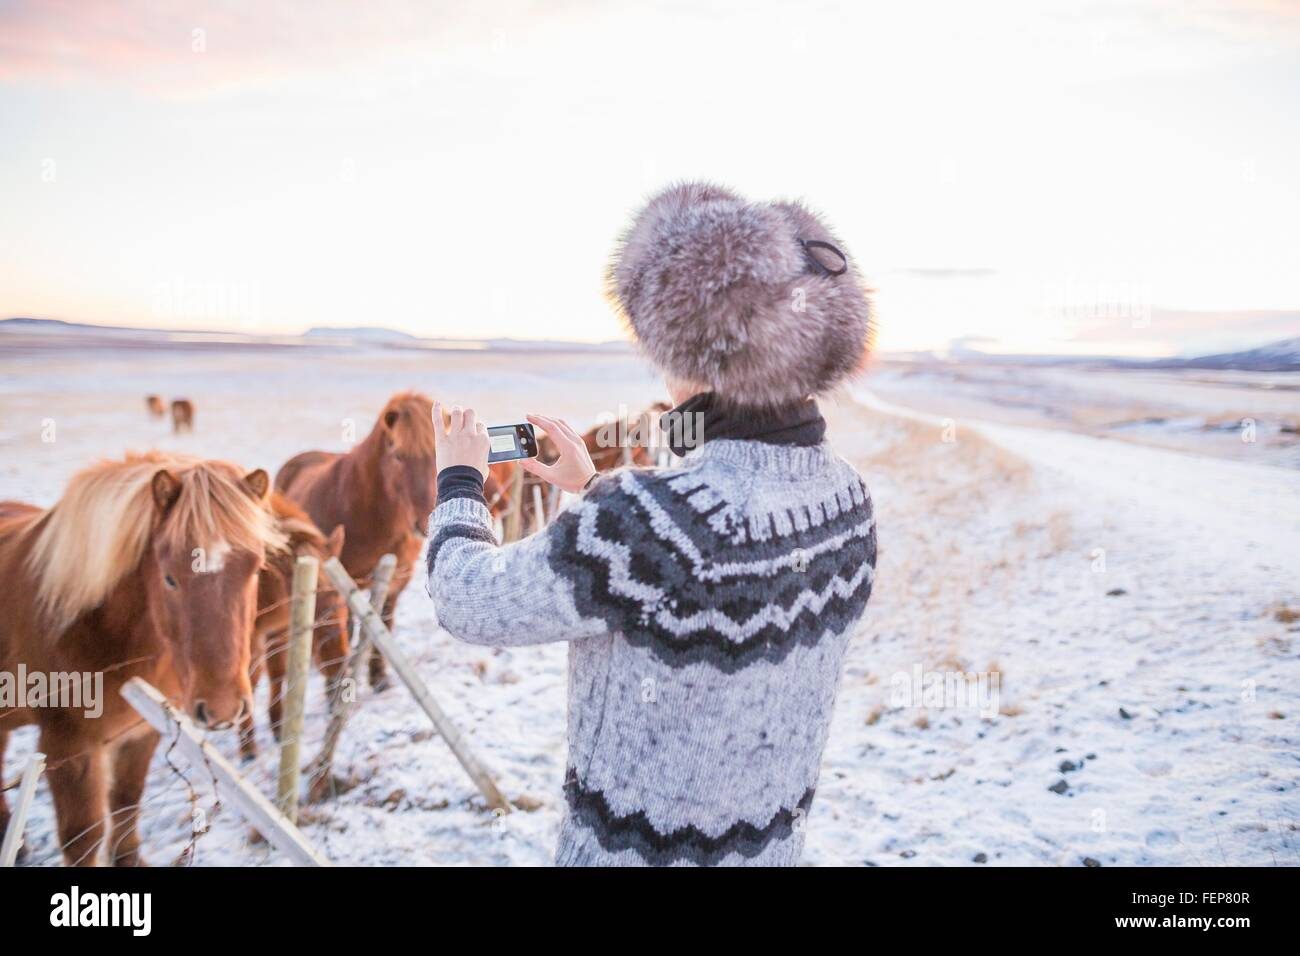 Woman taking photograph of ponies on snow-covered field, Iceland Stock Photo